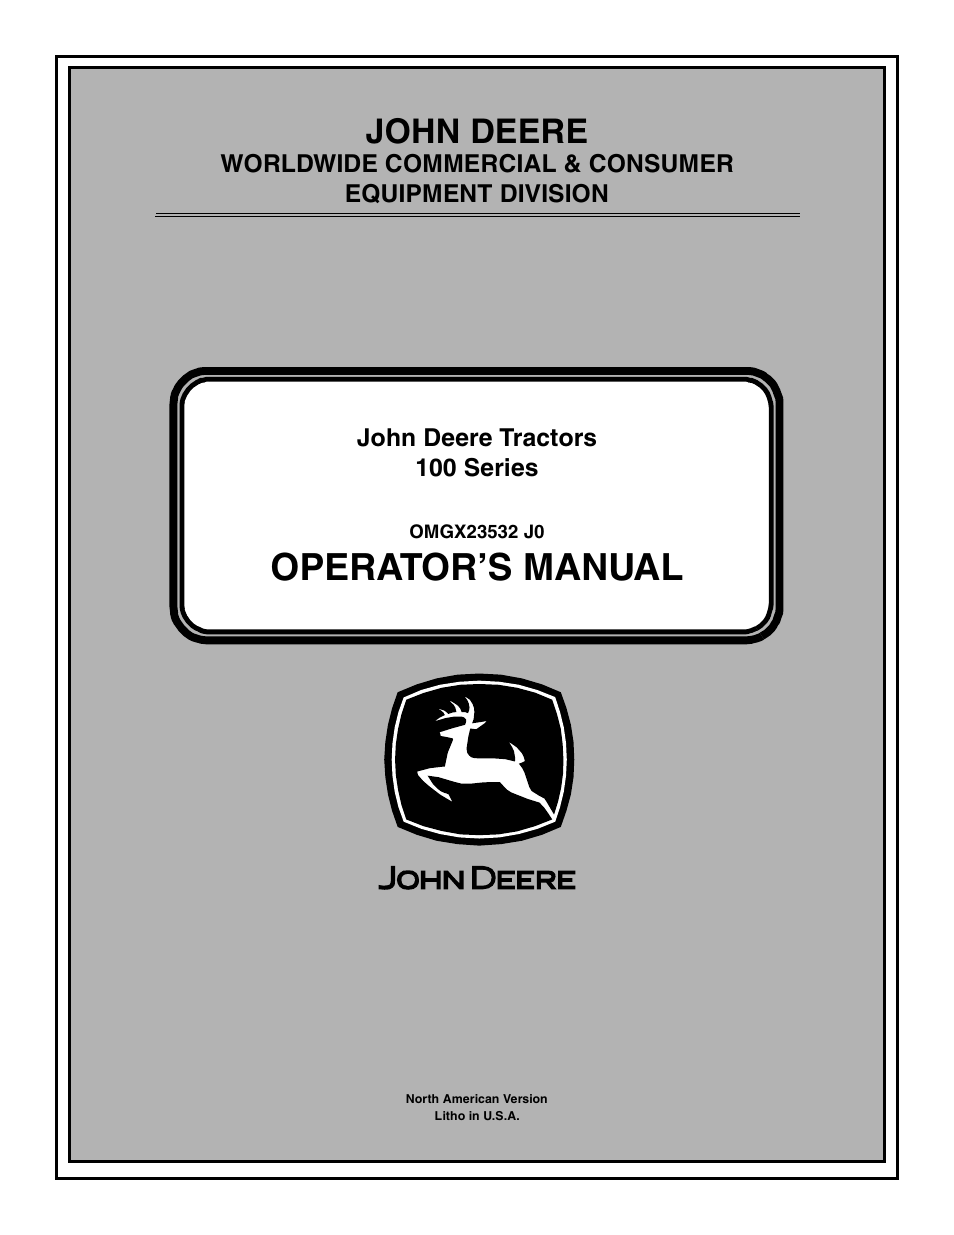 John Deere Tractor 100 Series Omg X23532 J0 User Manual 56 Pages D160 Wiring Harness Also For D100 D110 D120 D130 D140 D150 D170